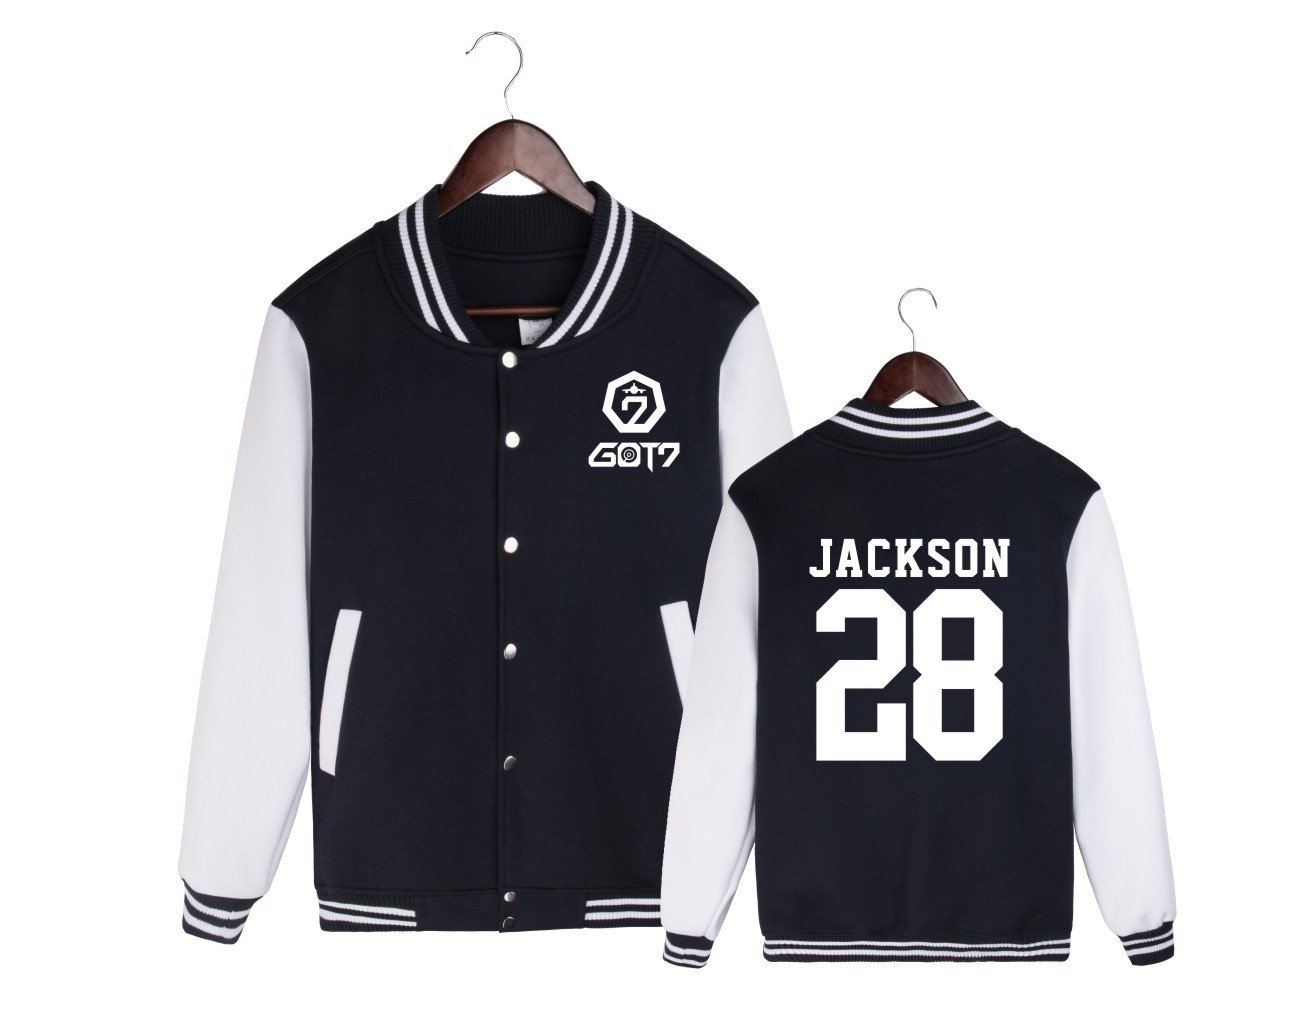 ALLDECOR GOT7 Fanmade Baseball Jacket Uniform Kpop Unisex Cotton Coat Sweater